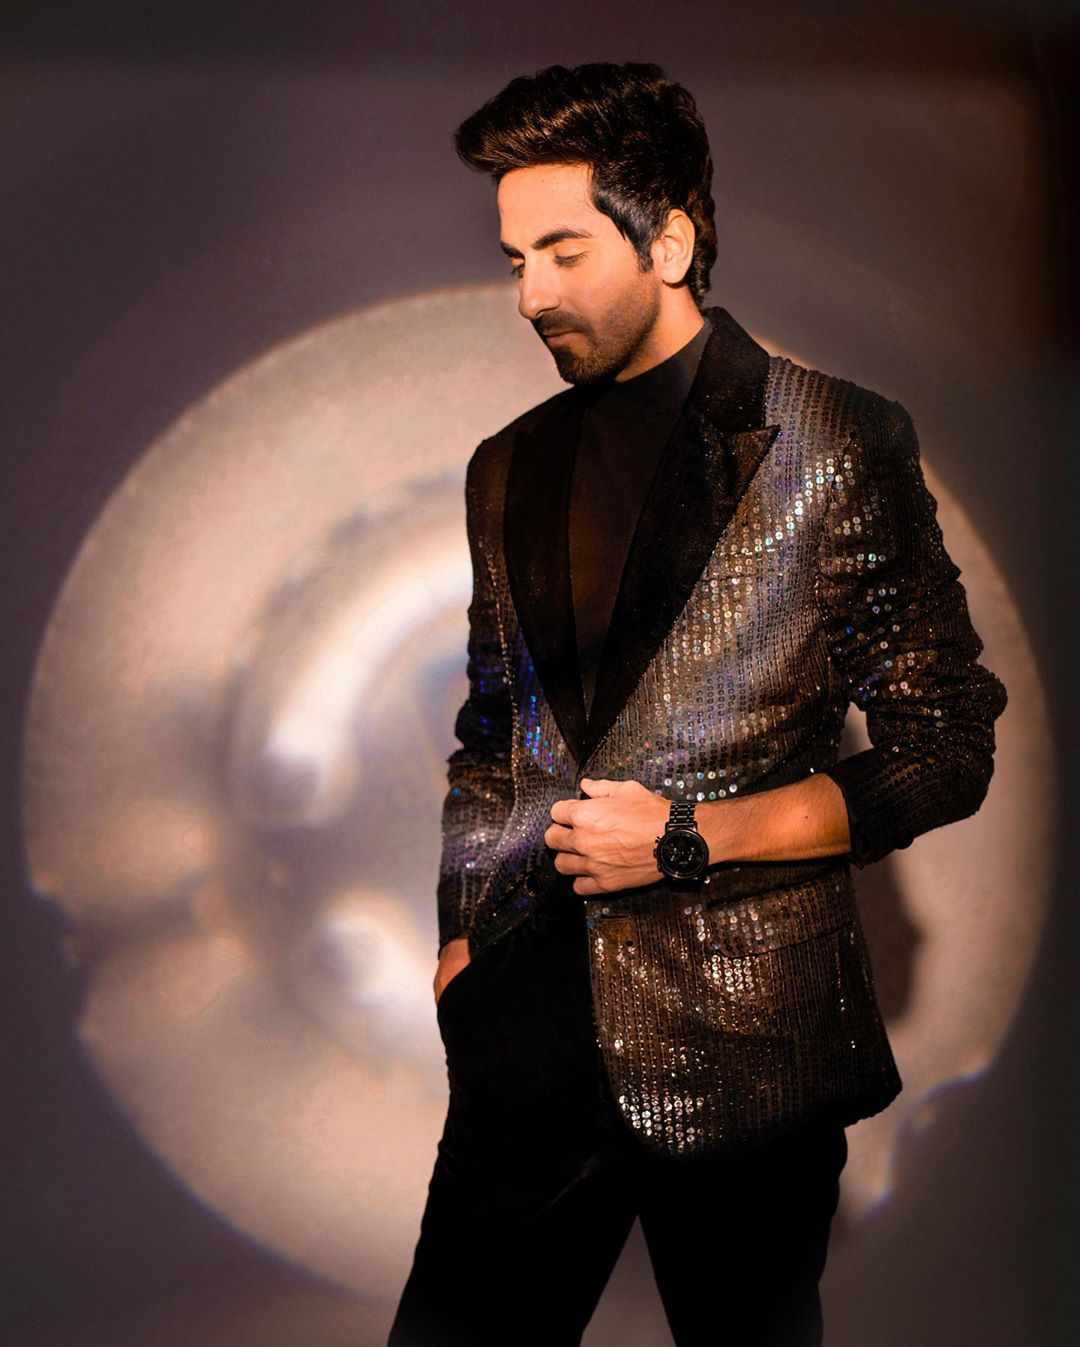 Ayushmann Khurrana, recently seen in 'Shubh Mangal Zyada Saavdhan', was honoured with the award for 'Best Entertainer of the Year' at Zee Cine Awards 2020. Photo Courtesy: Twitter